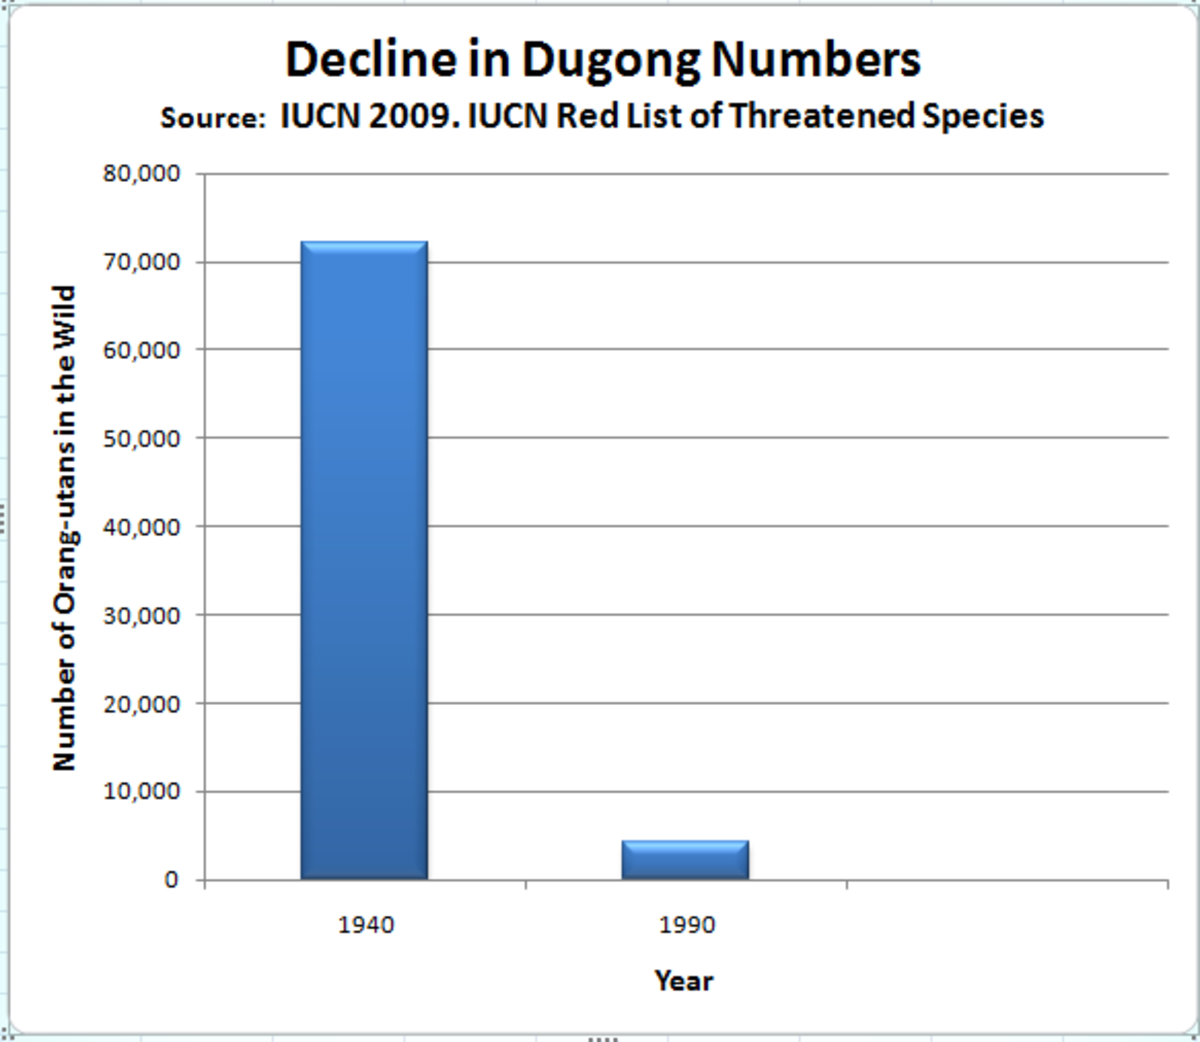 bar chart graph showing the population change of the dugong from 1940 to 1990